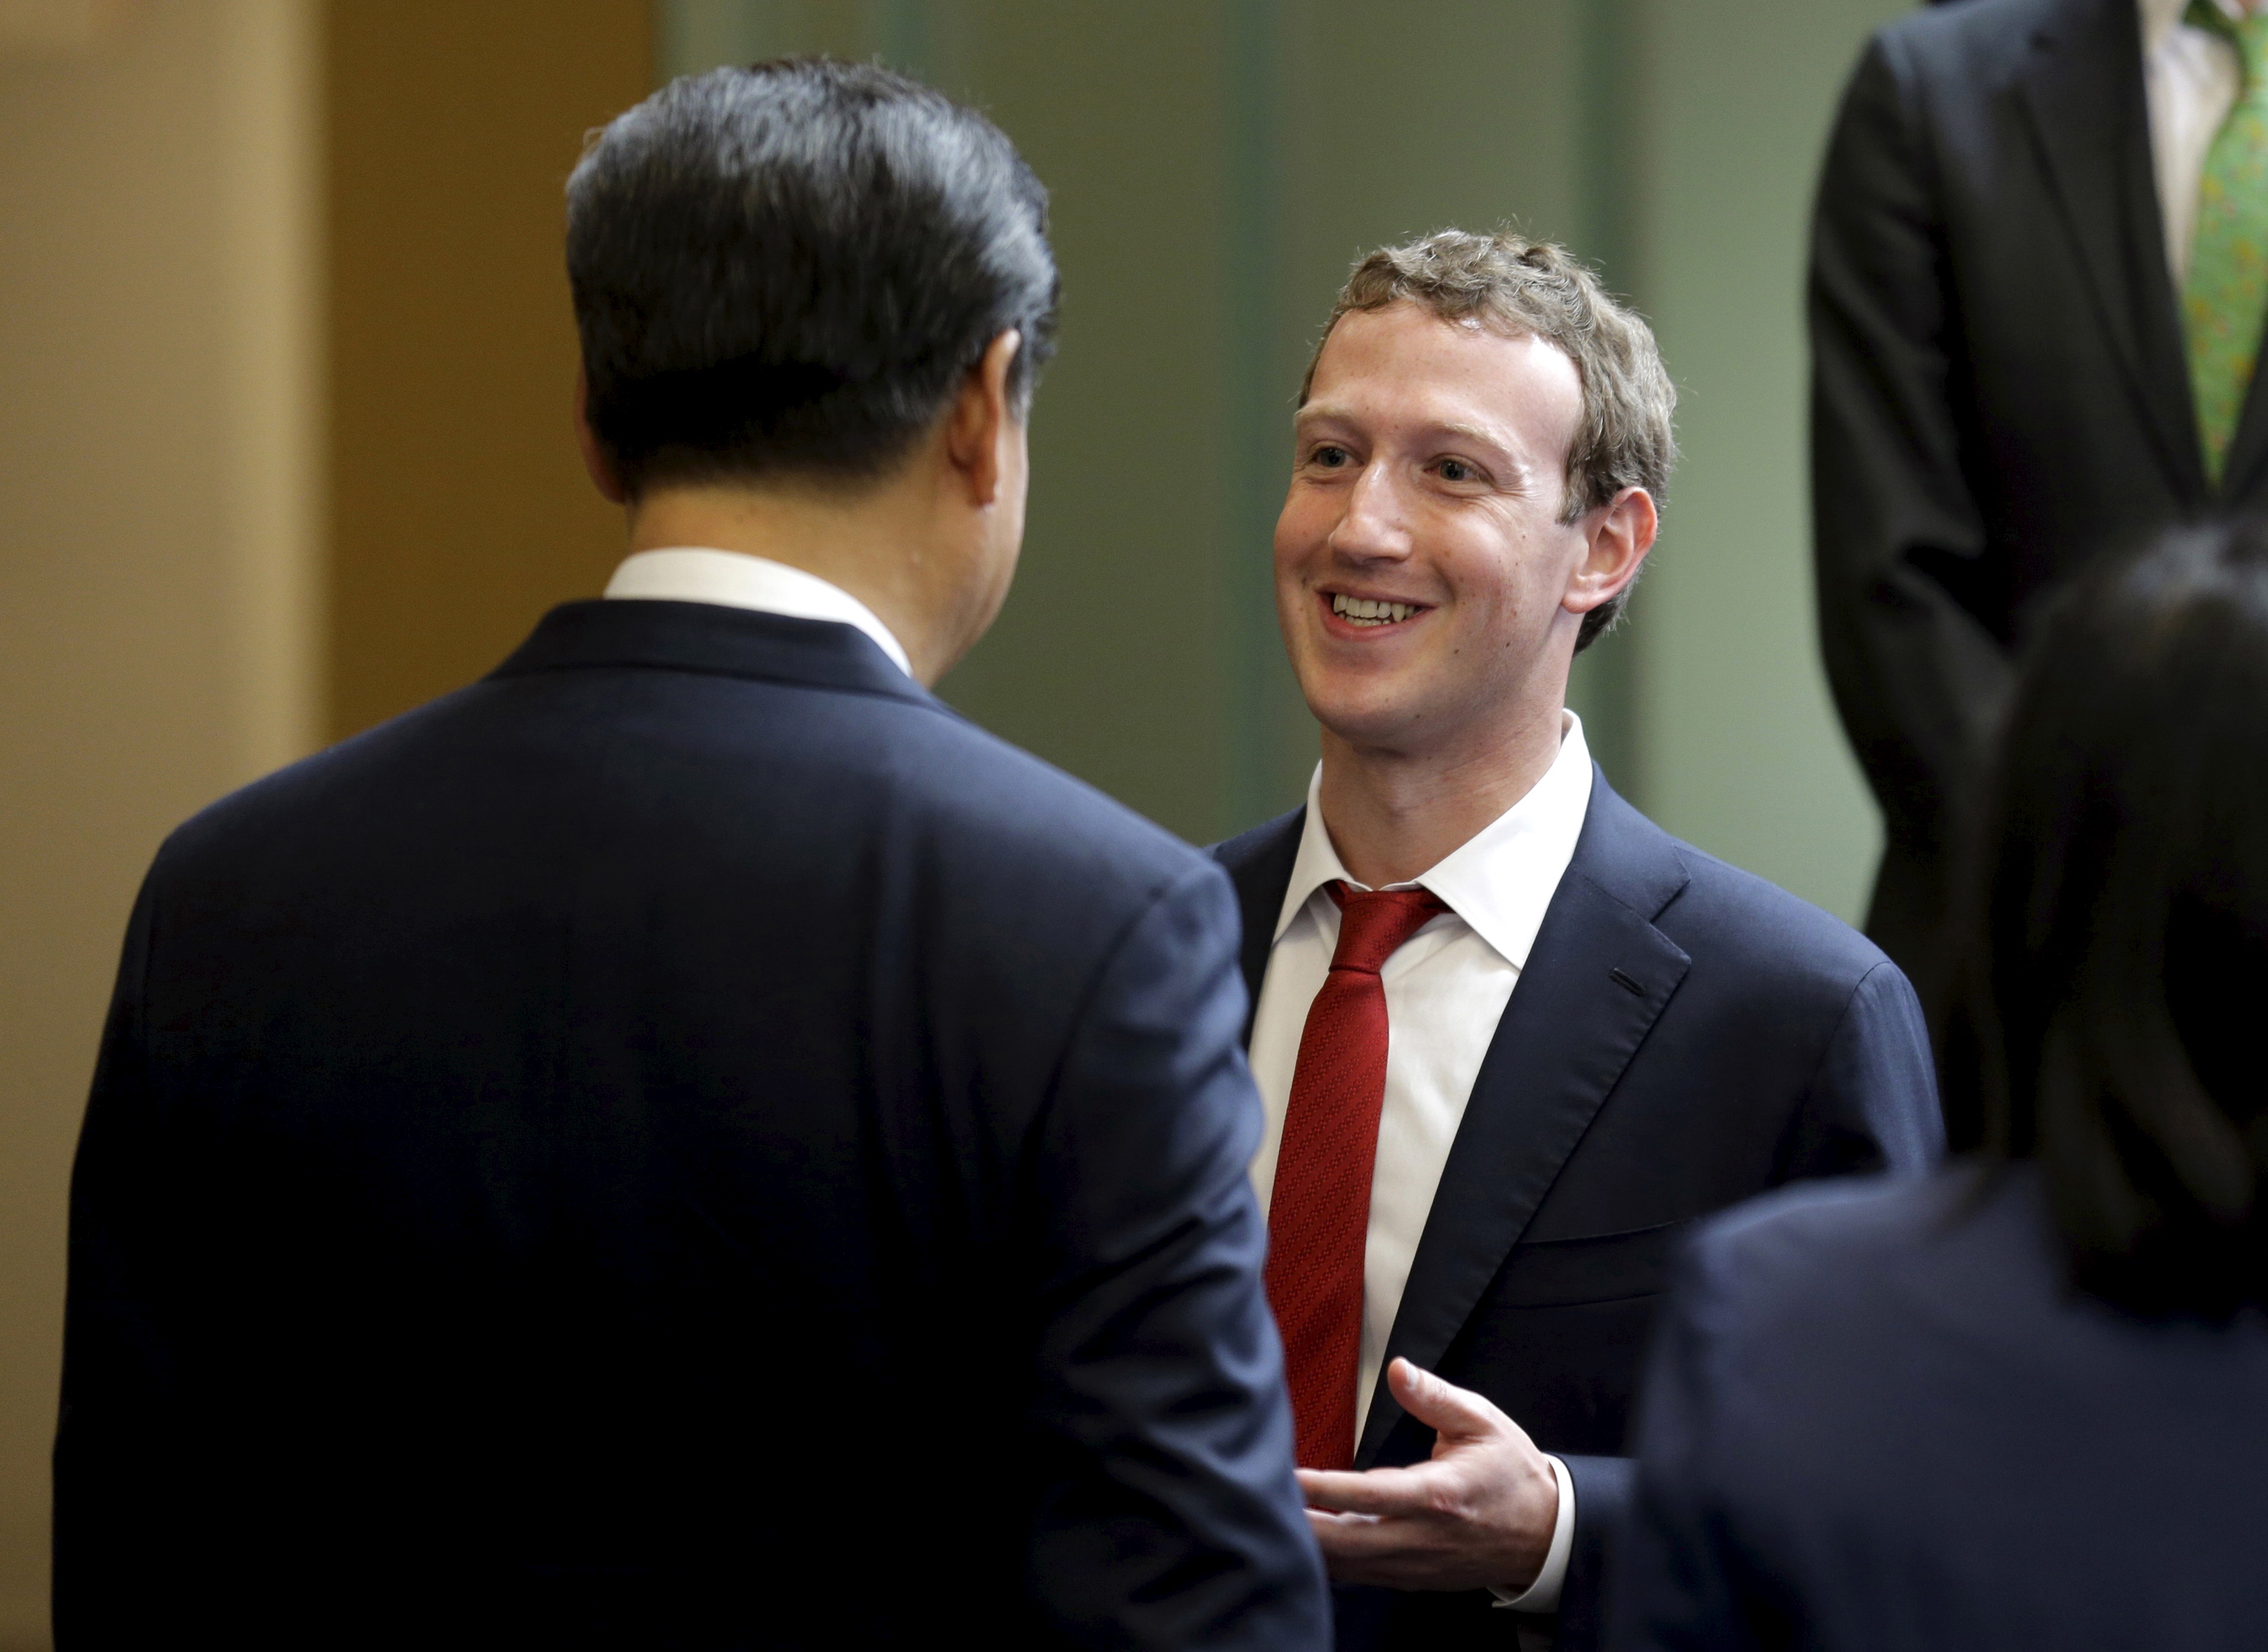 Chinese President Xi Jinping. left, talks with Facebook CEO Mark Zuckerberg at Microsoft's main campus in Redmond, Wash., on Sept. 23, 2015